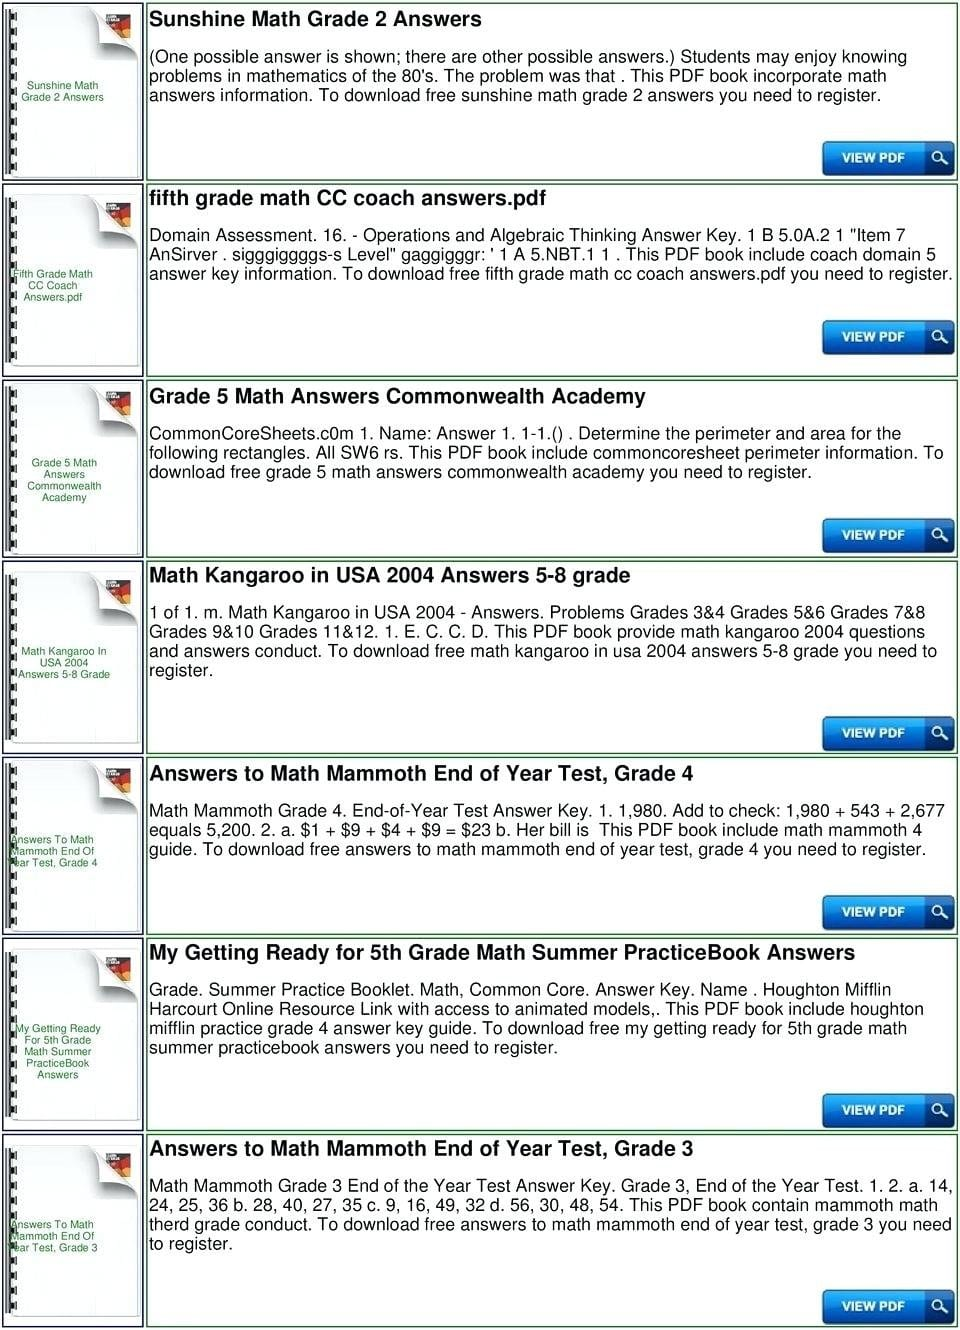 5Th Grade Common Core Math Worksheets Answers For Print  Math As Well As 7Th Grade Common Core Math Worksheets With Answer Key